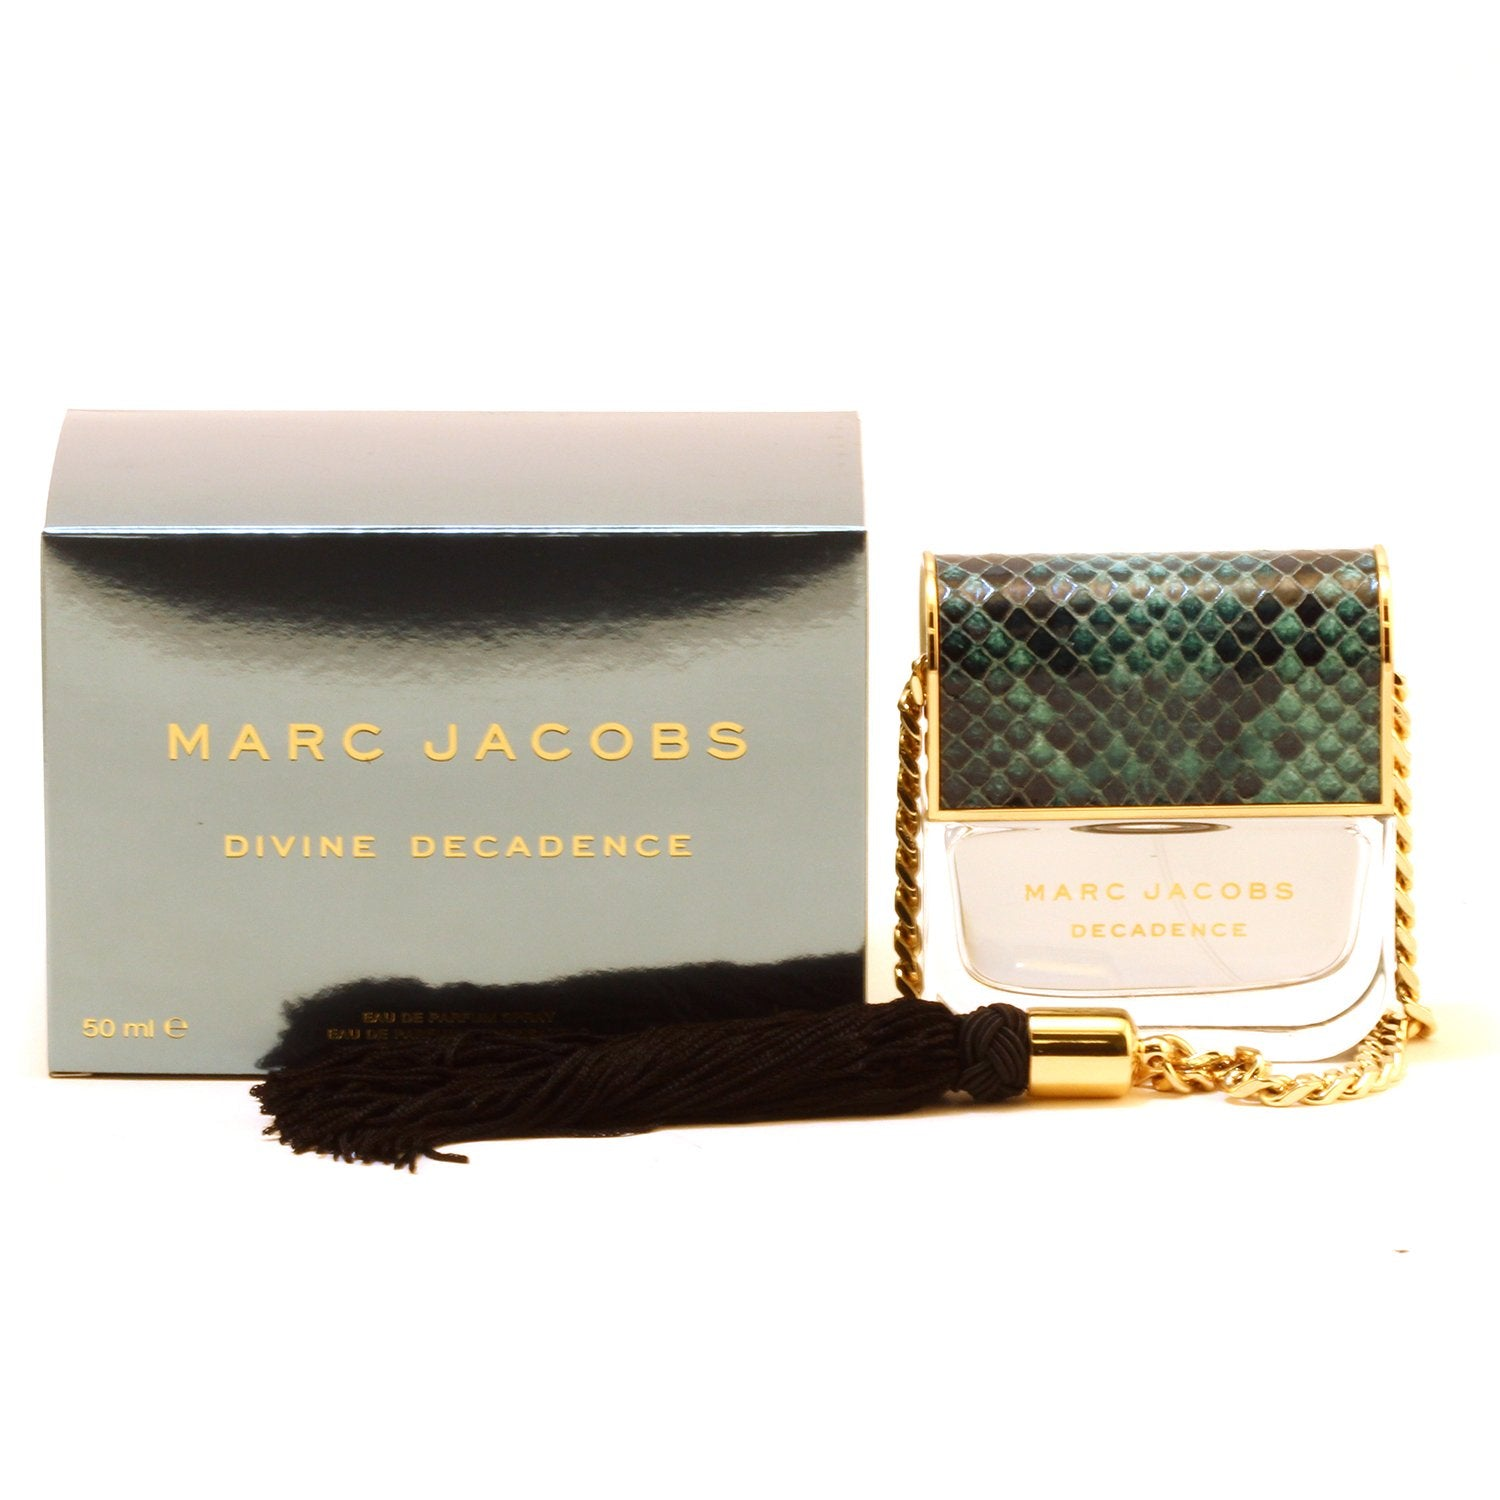 b9465e7f7 Perfume - MARC JACOBS DIVINE DECADENCE FOR WOMEN - EAU DE PARFUM SPRAY